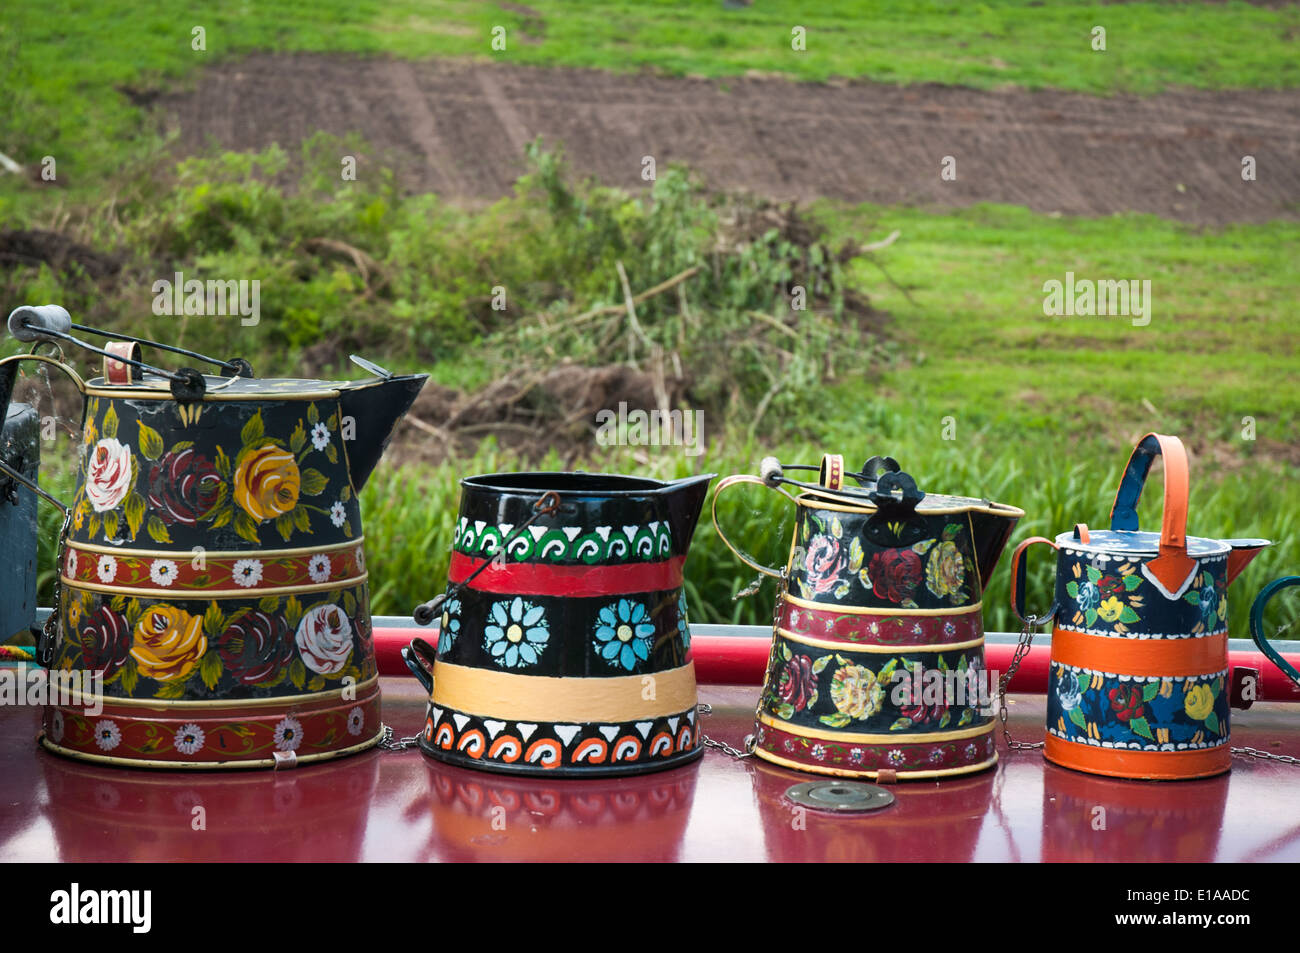 painted jugs decorate a narrowboat moored on the Staffordshire and Worcestershire Canal in the Black Country, England - Stock Image